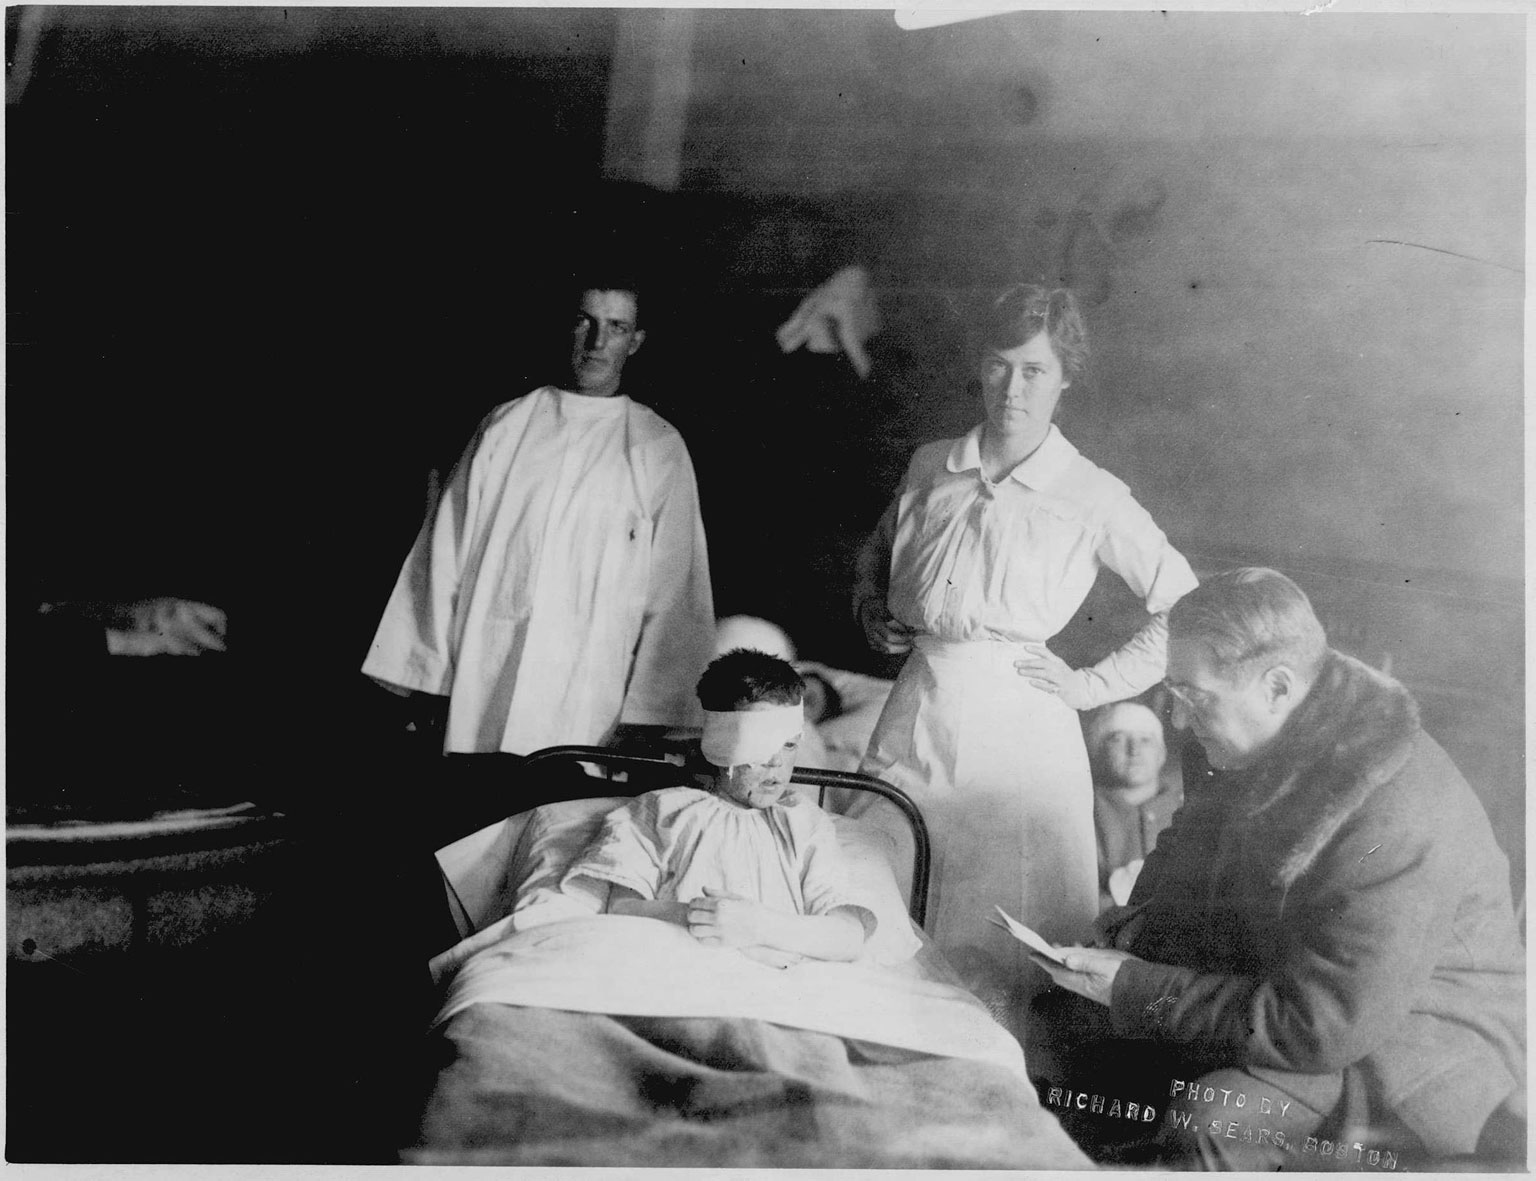 George Arthur, wounded in the explosion, sits with nurse Edith Choate, A.C. Ratshesky, and an unnamed man.